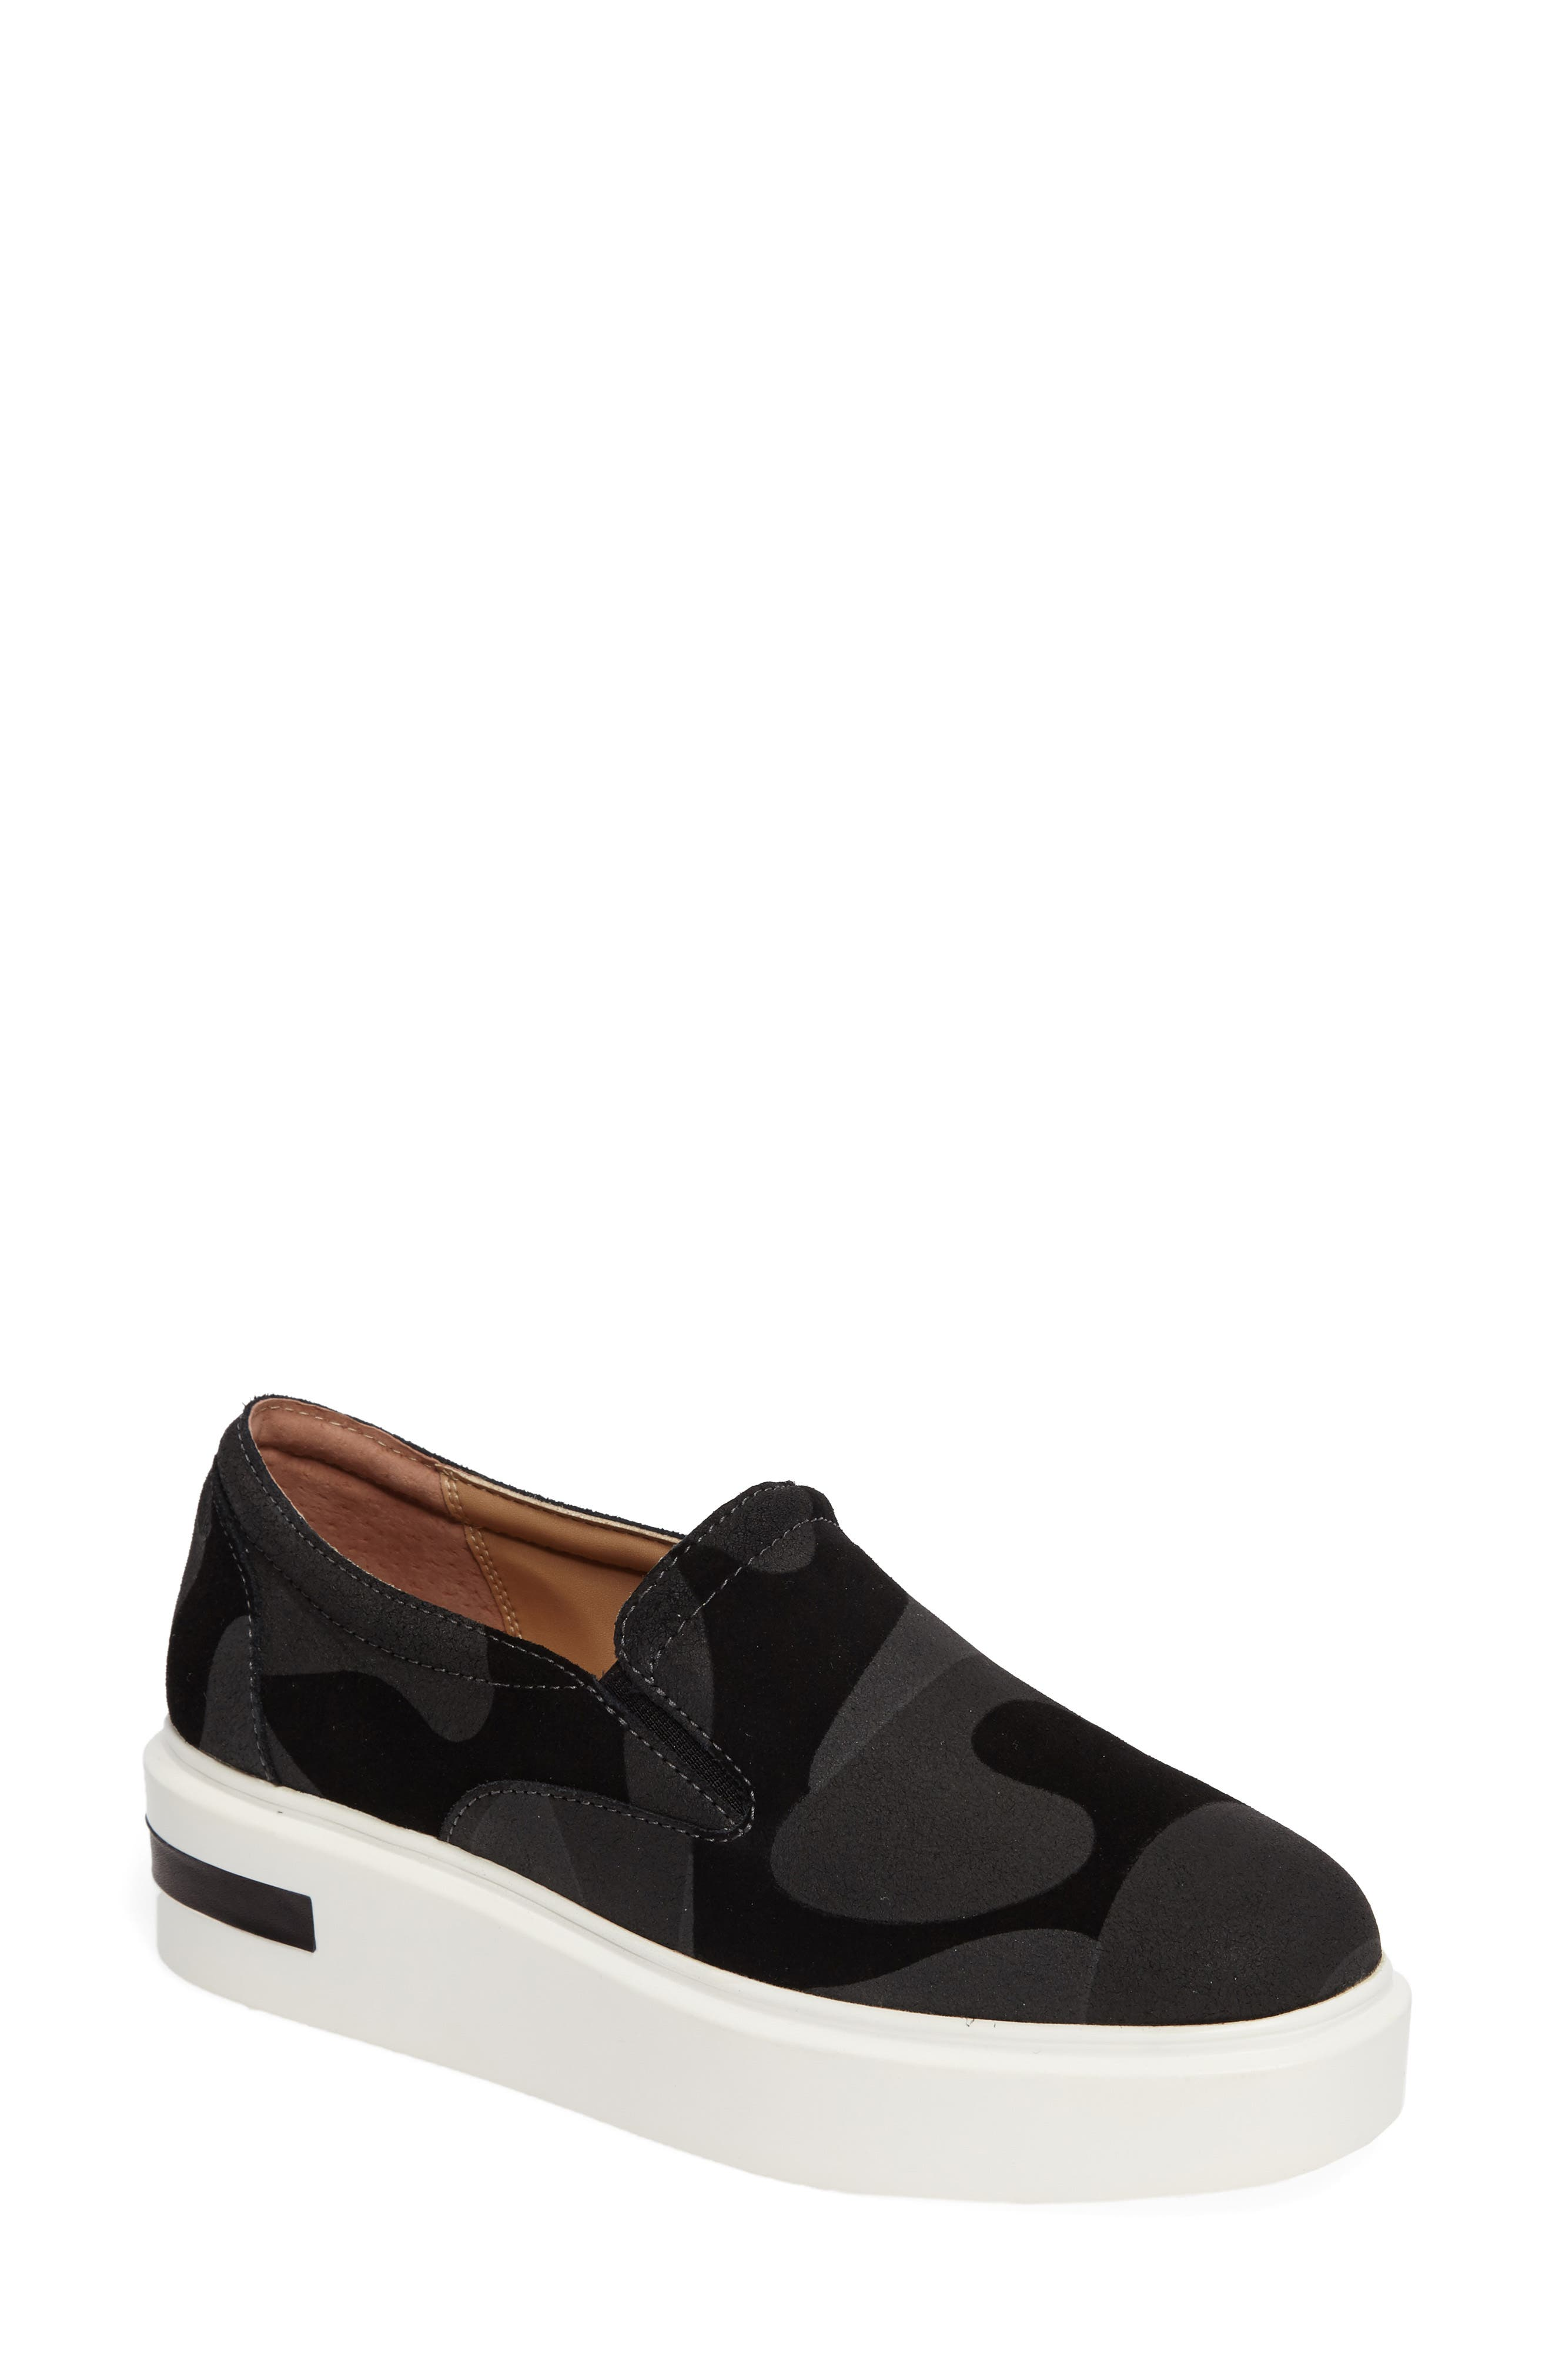 Fairfax Platform Sneaker,                             Main thumbnail 1, color,                             004